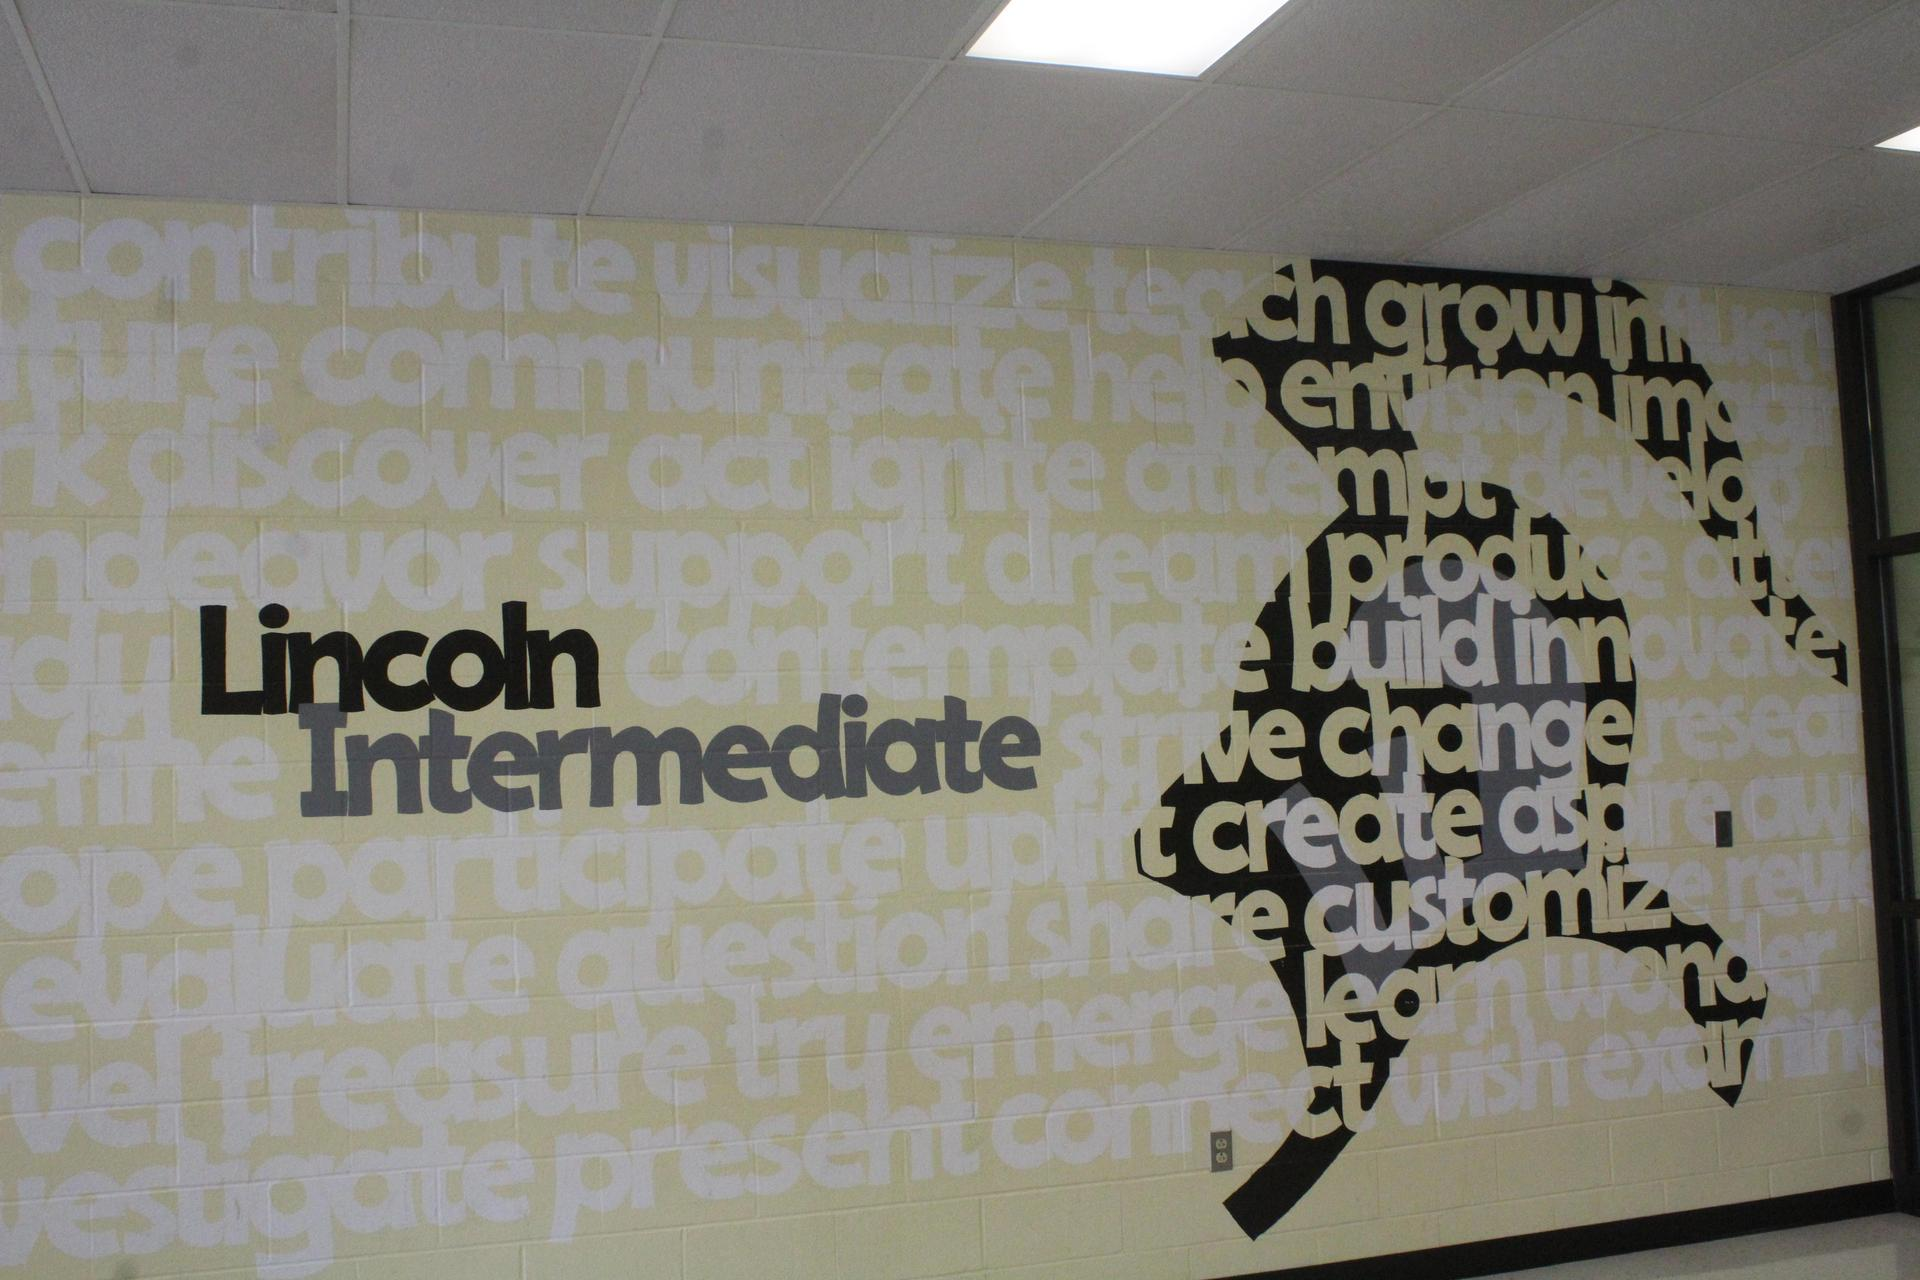 Lincoln Intermediate Wall Mural